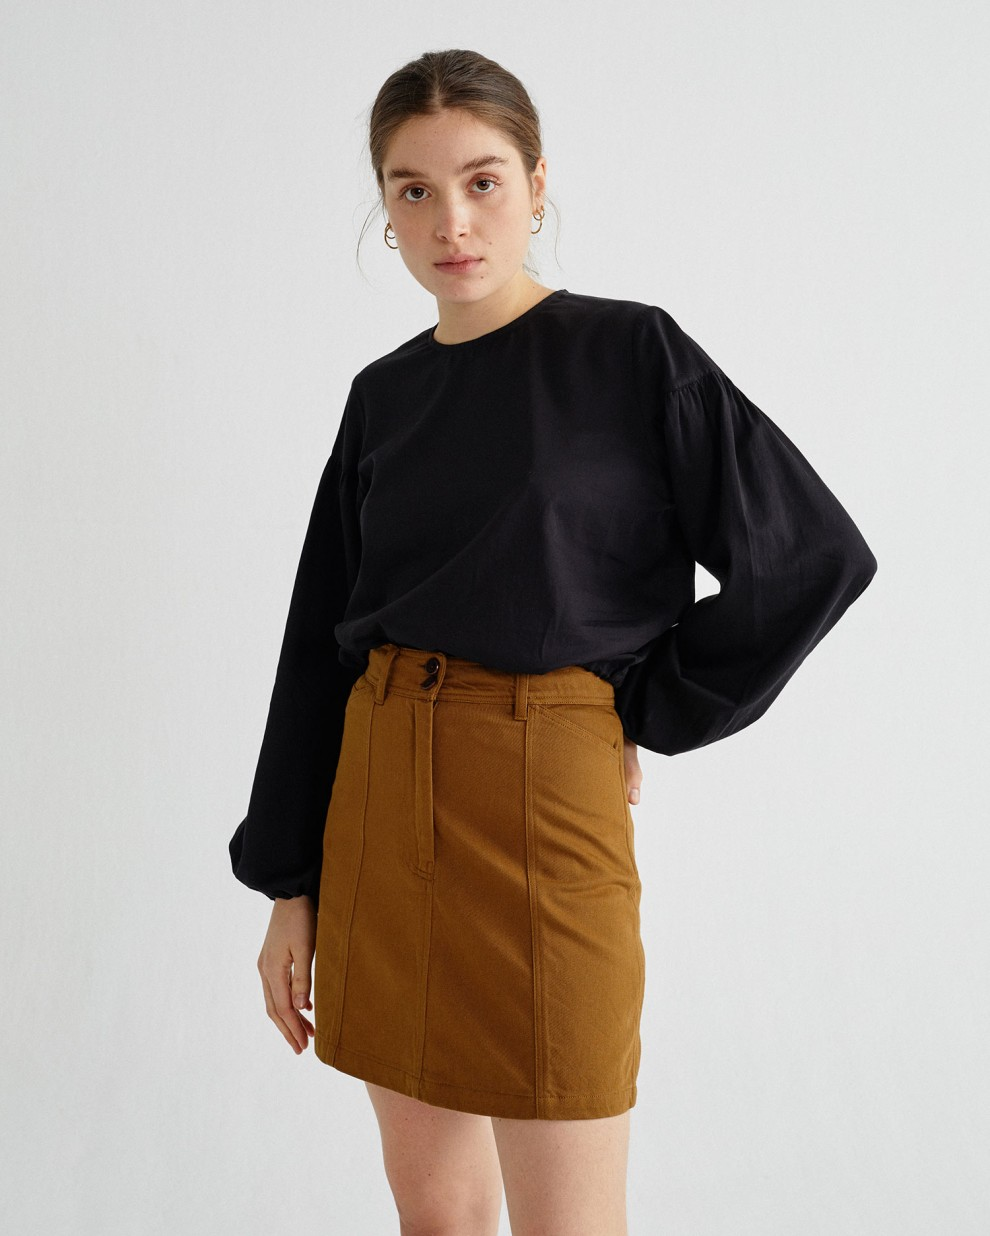 BLACK BOANN BLOUSE